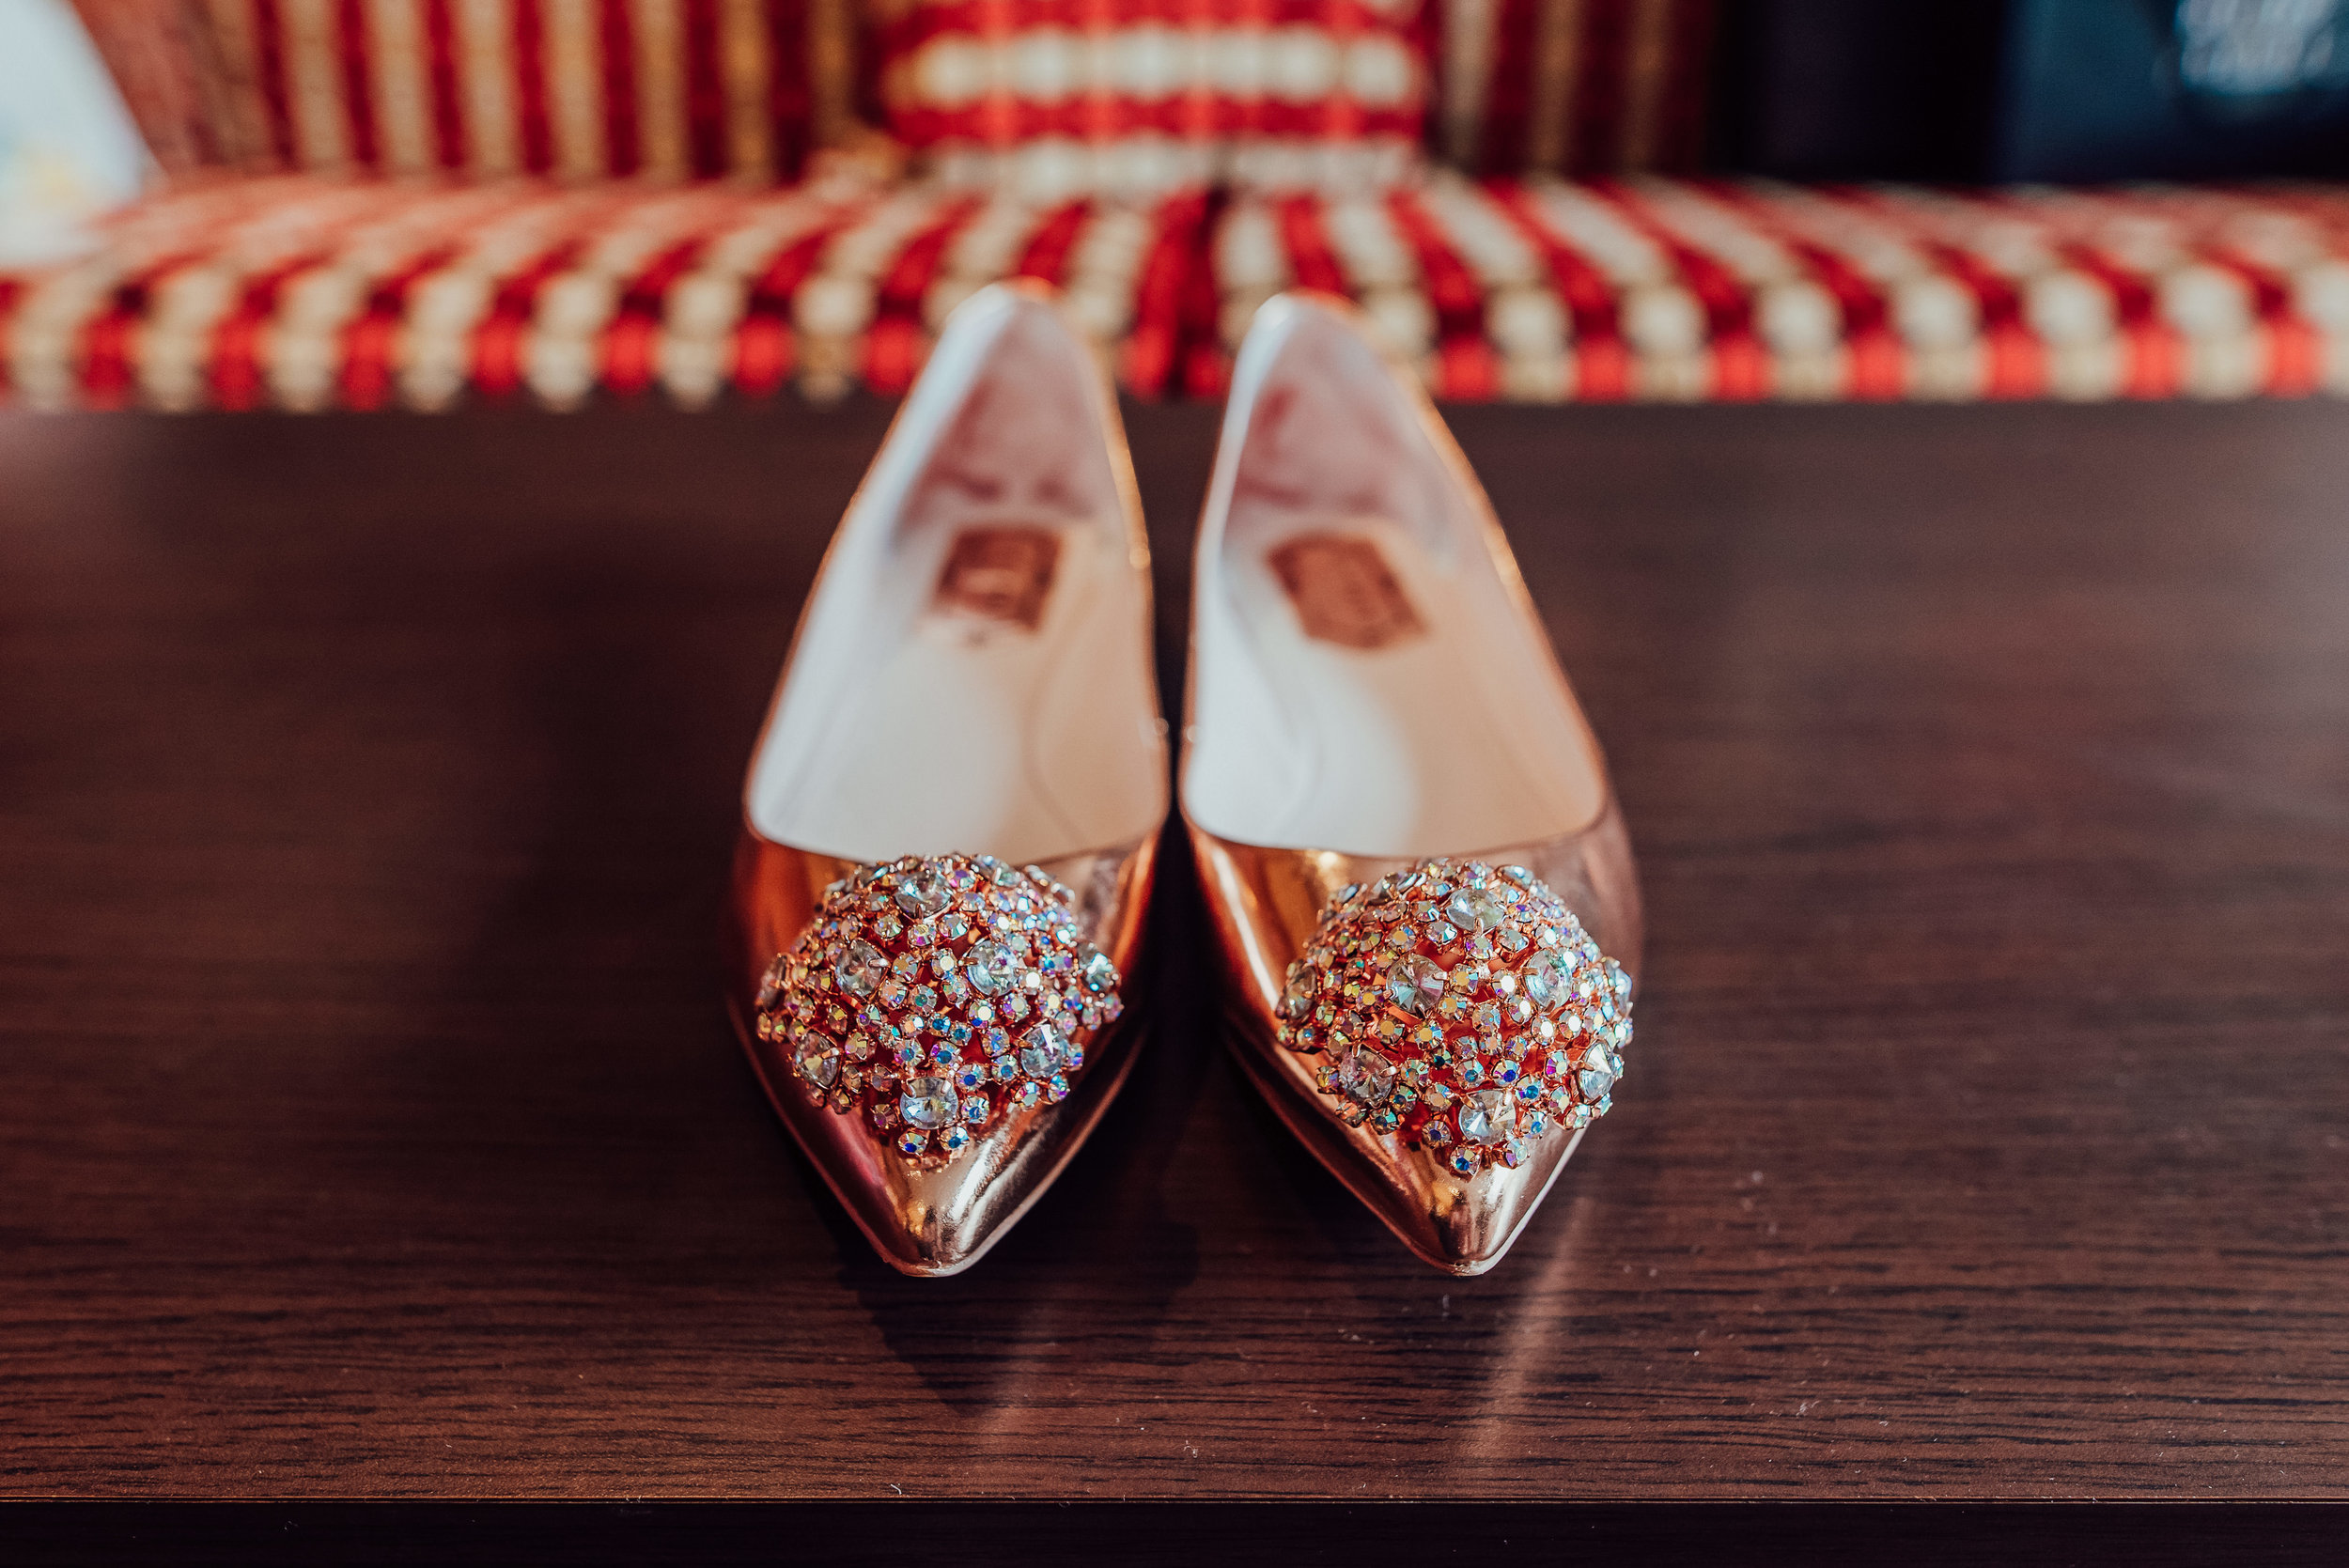 Sparkly rose gold bridal shoes - Heatherden Hall Wedding - Amy James photography - Hampshire wedding photographer